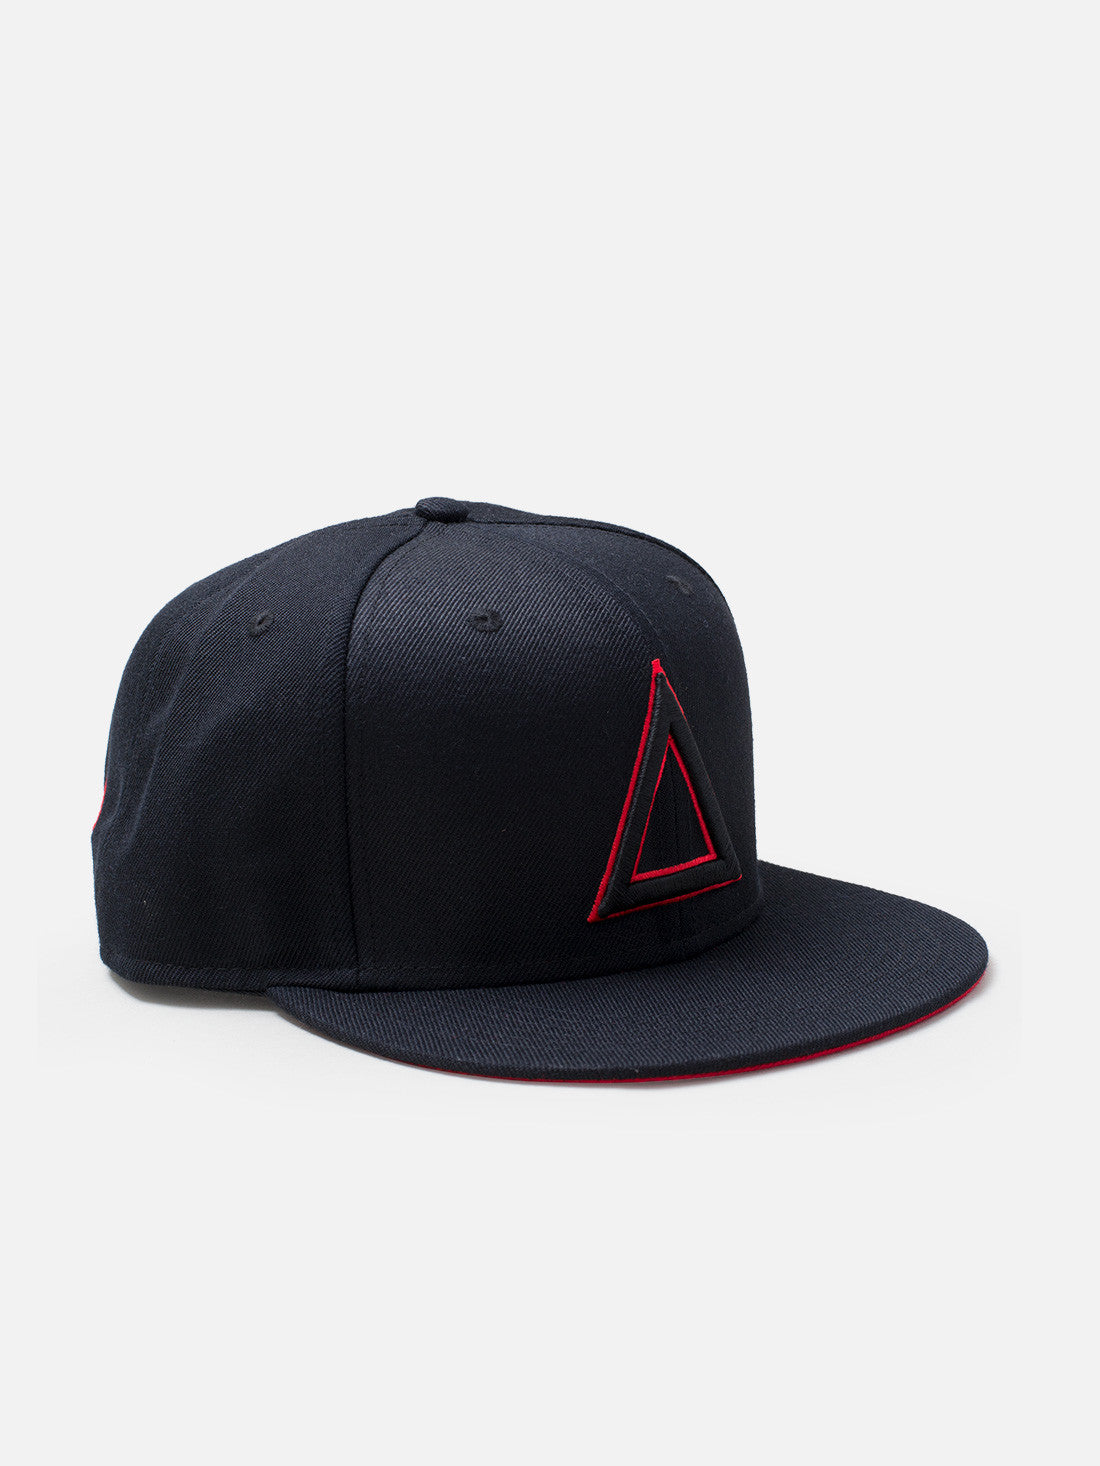 Red Bottom Snapback